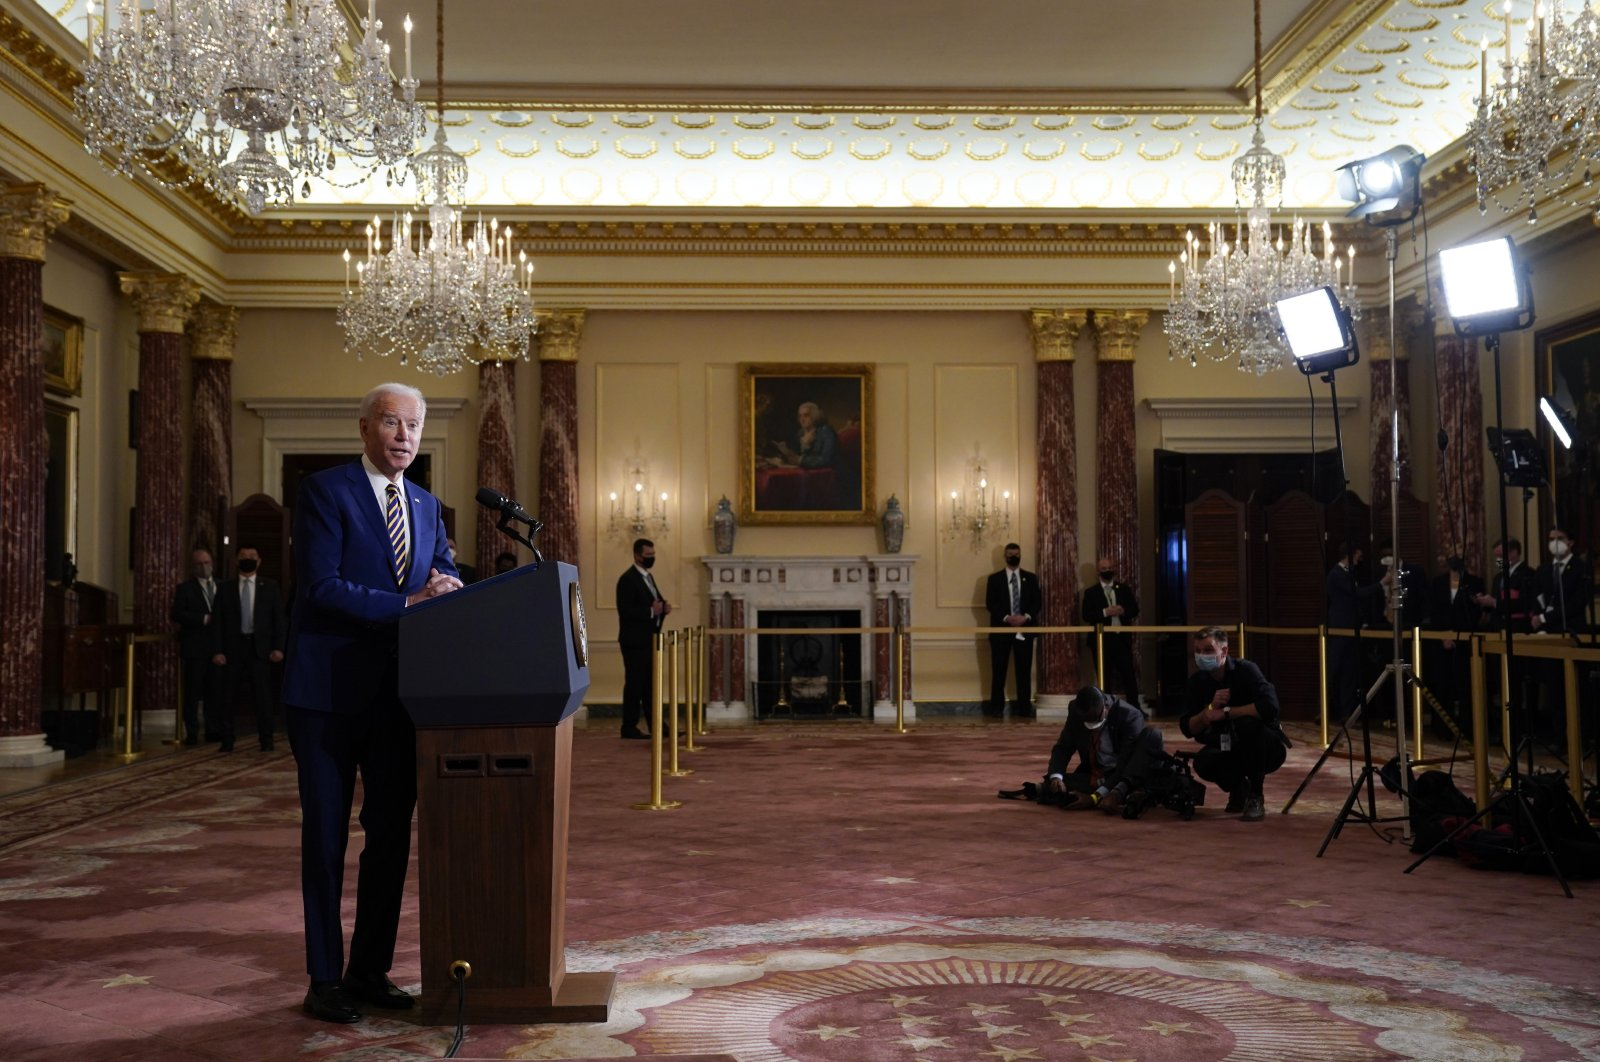 U.S. President Joe Biden speaks about foreign policy at the State Department, Washington, D.C., U.S., Feb. 4, 2021. (AP Photo)